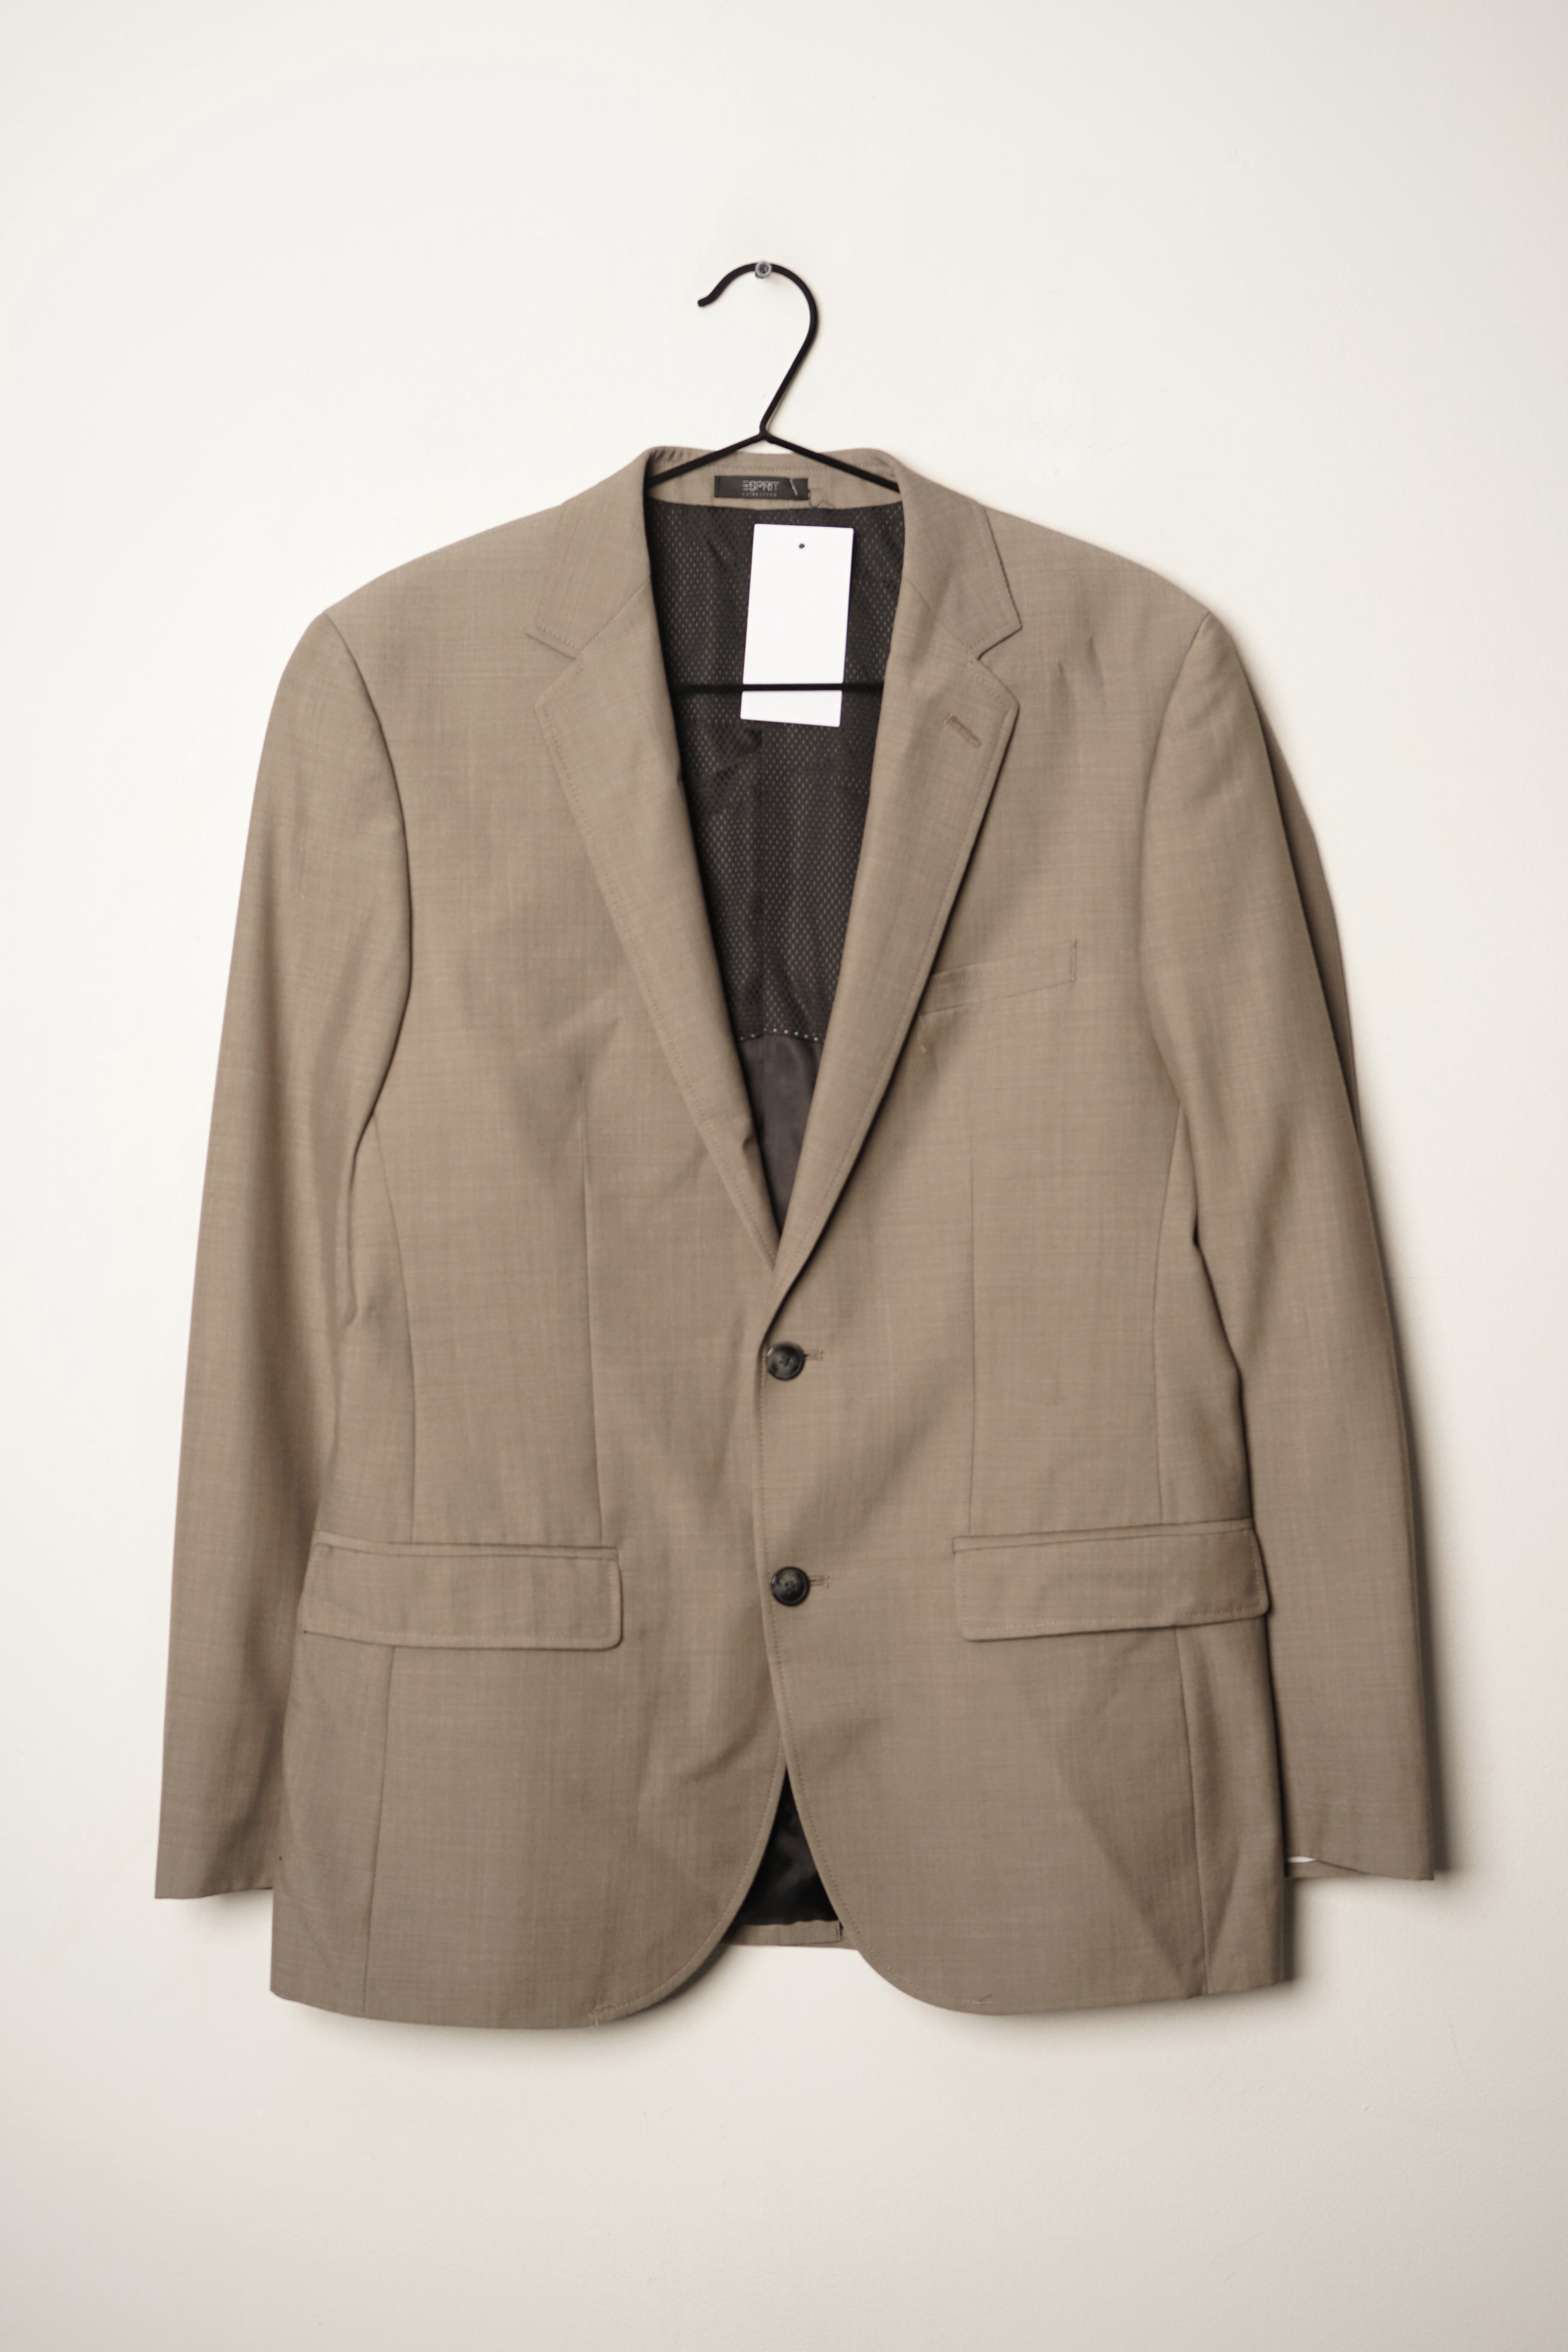 Esprit Collection blazer, grå, 48